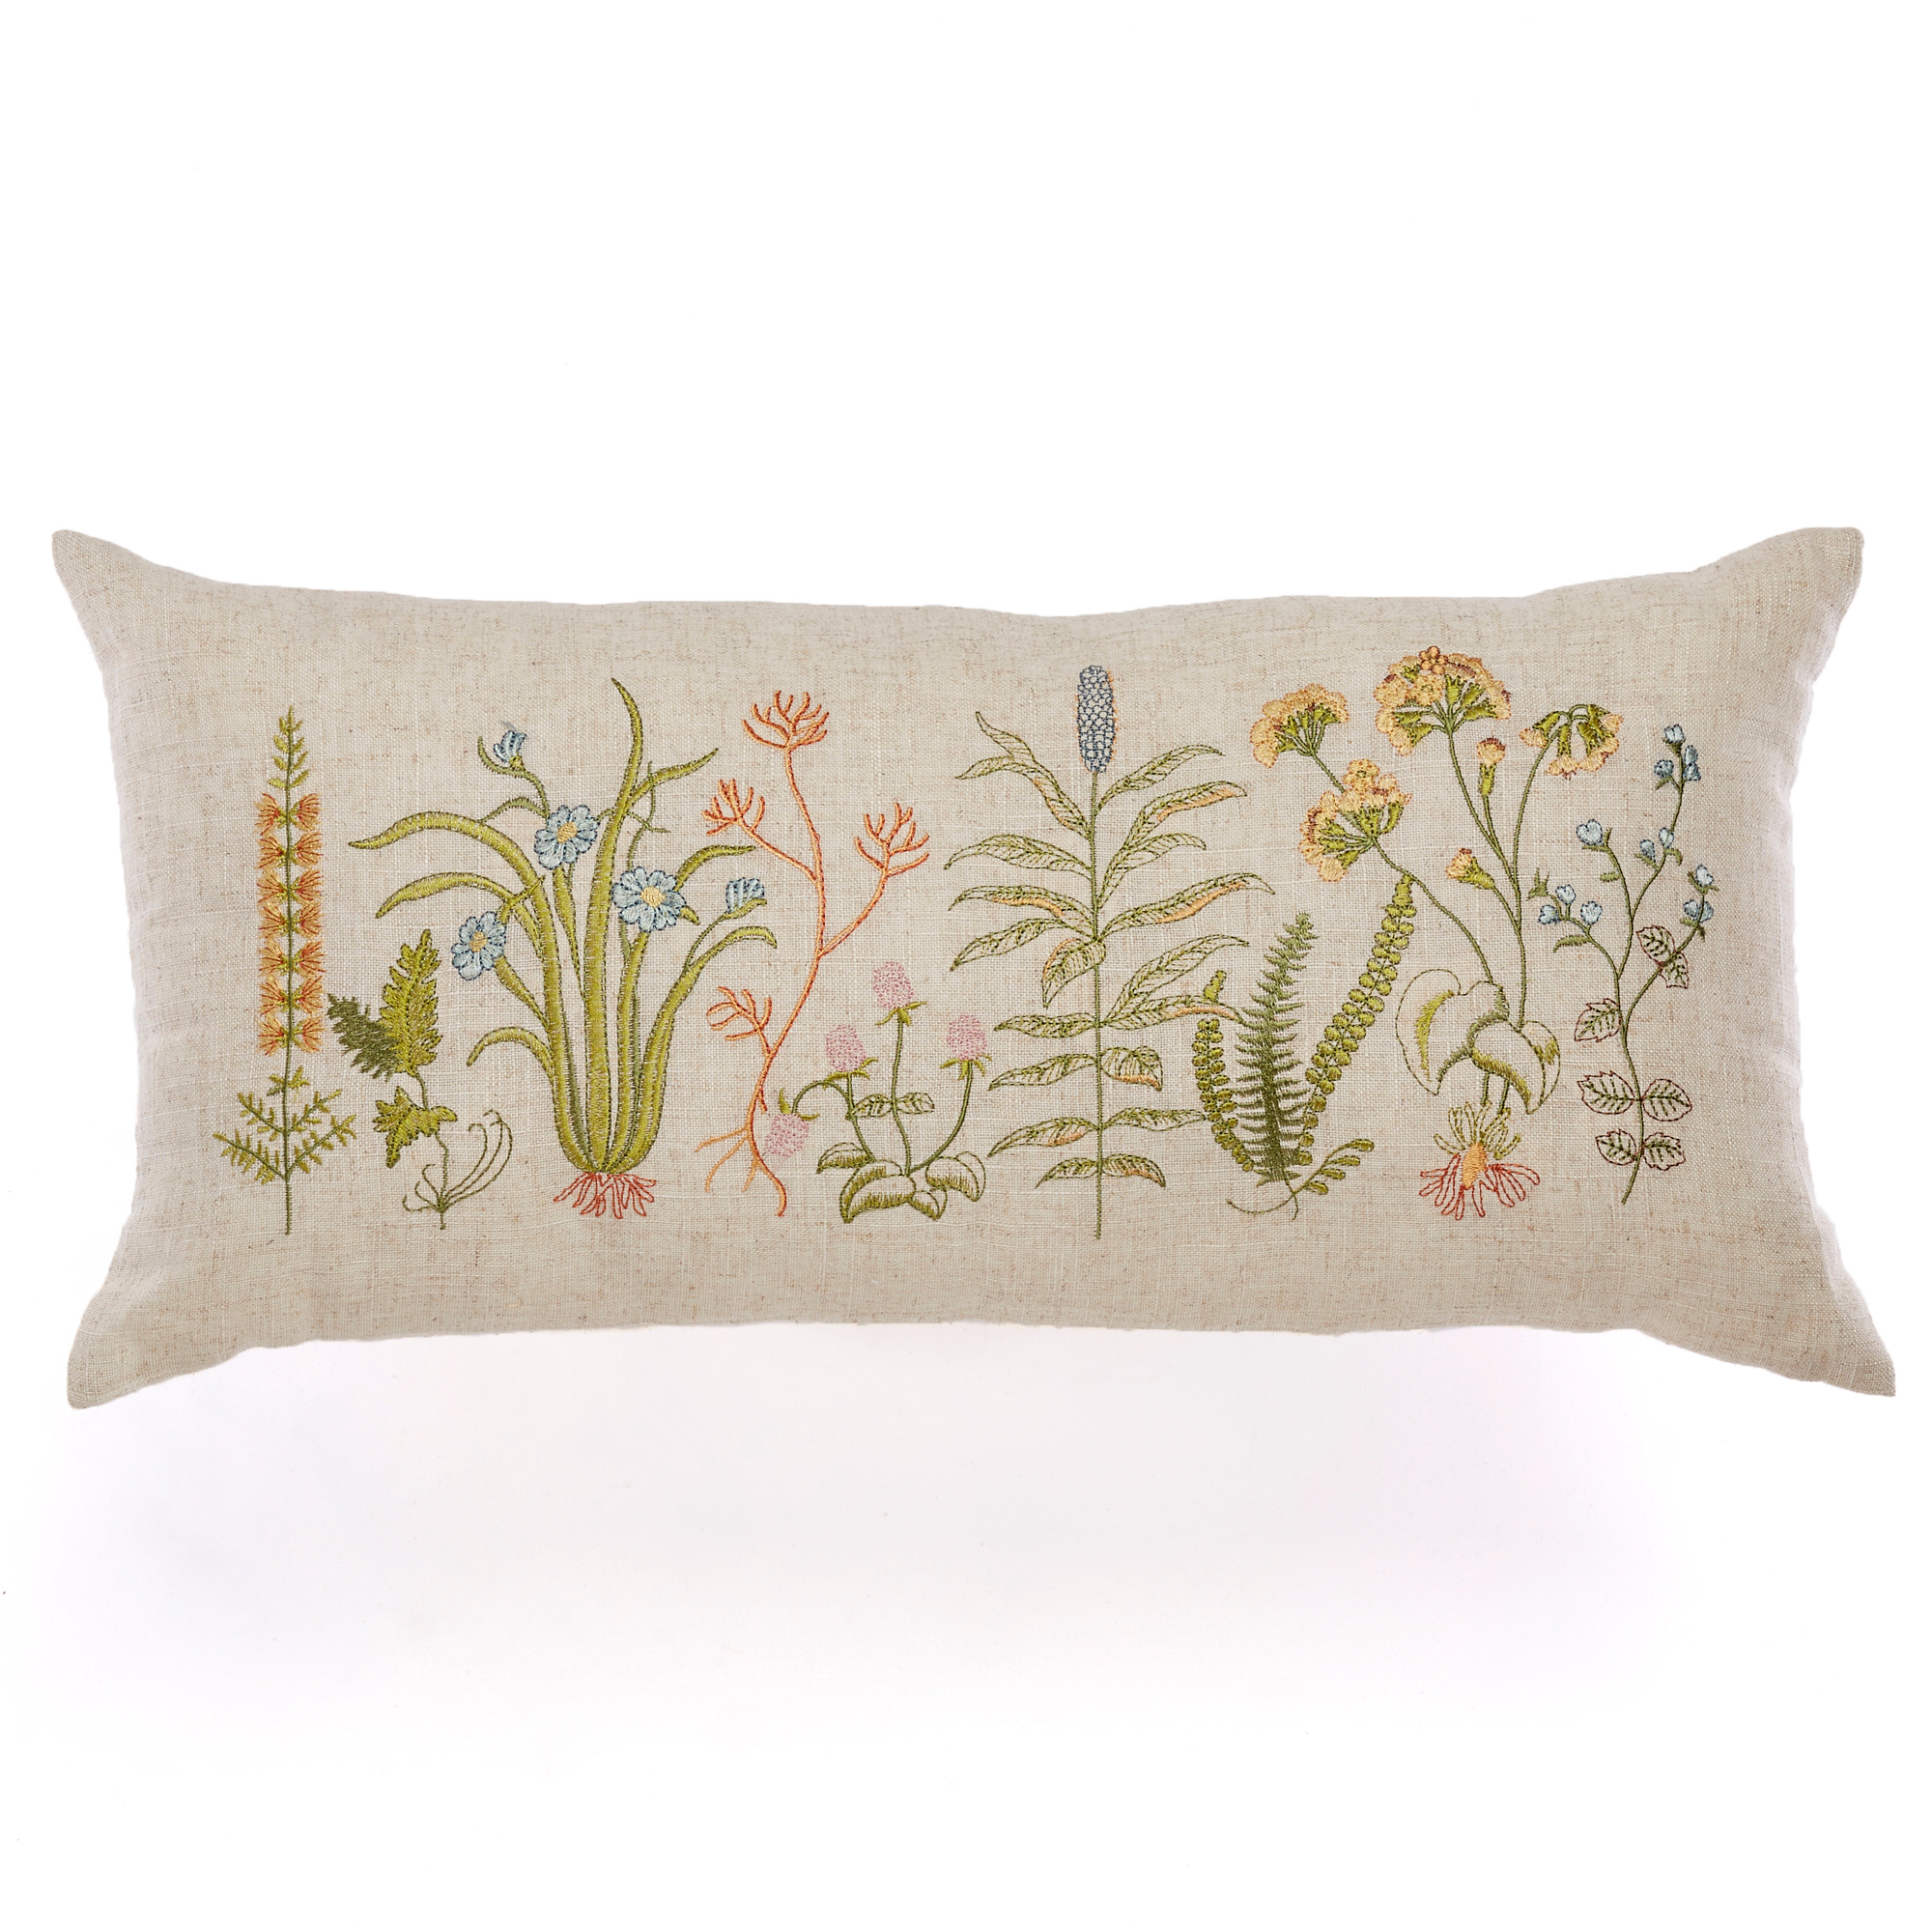 Meadow Embroidered Pillow